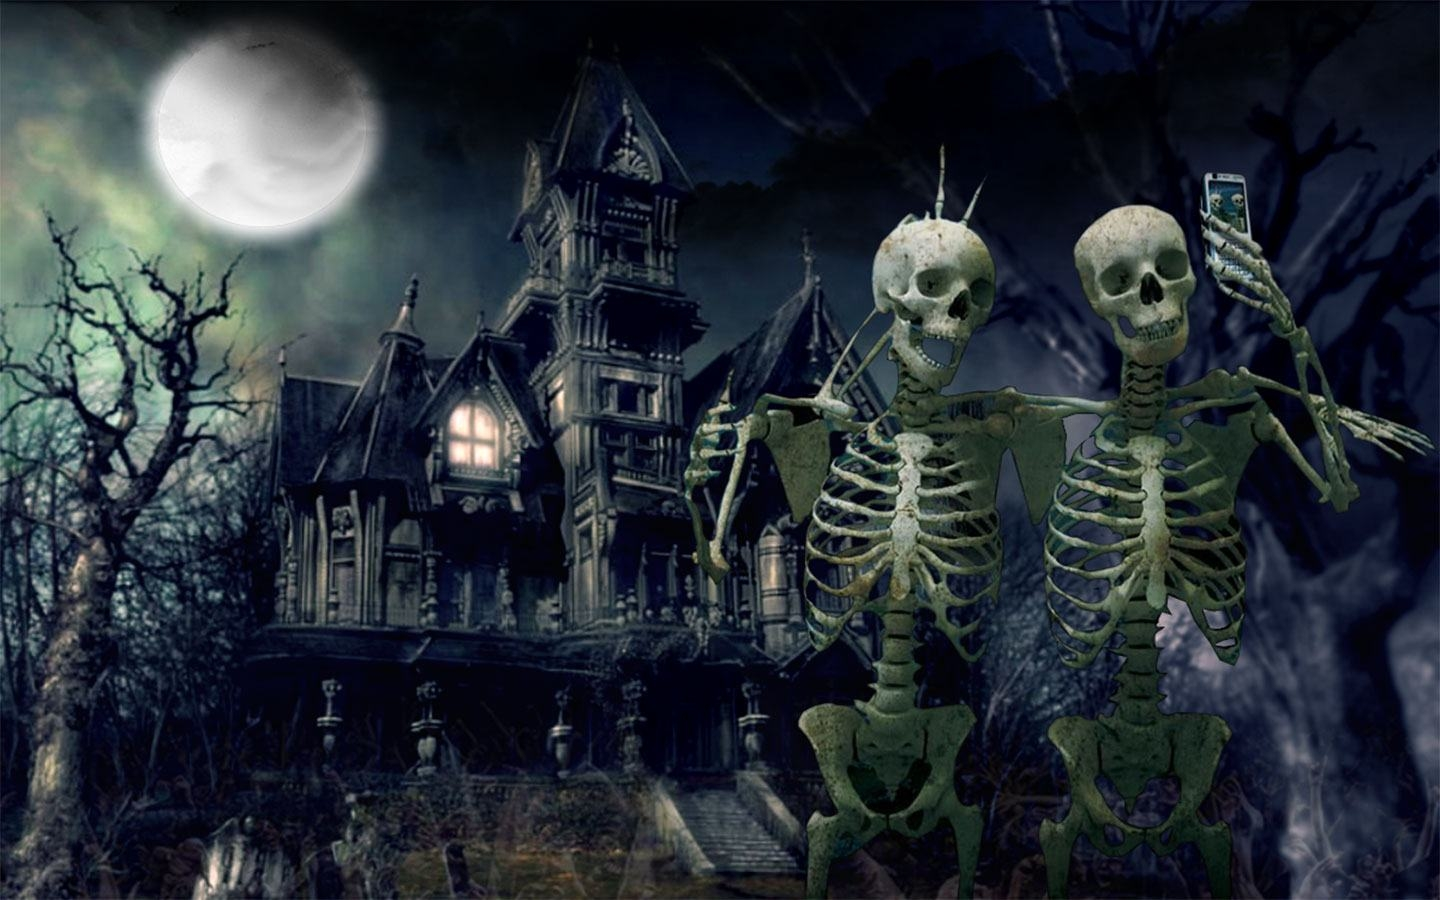 Haunted House Skeletons wallpaper HD Wallpapers Backgrounds Hau 1440x900